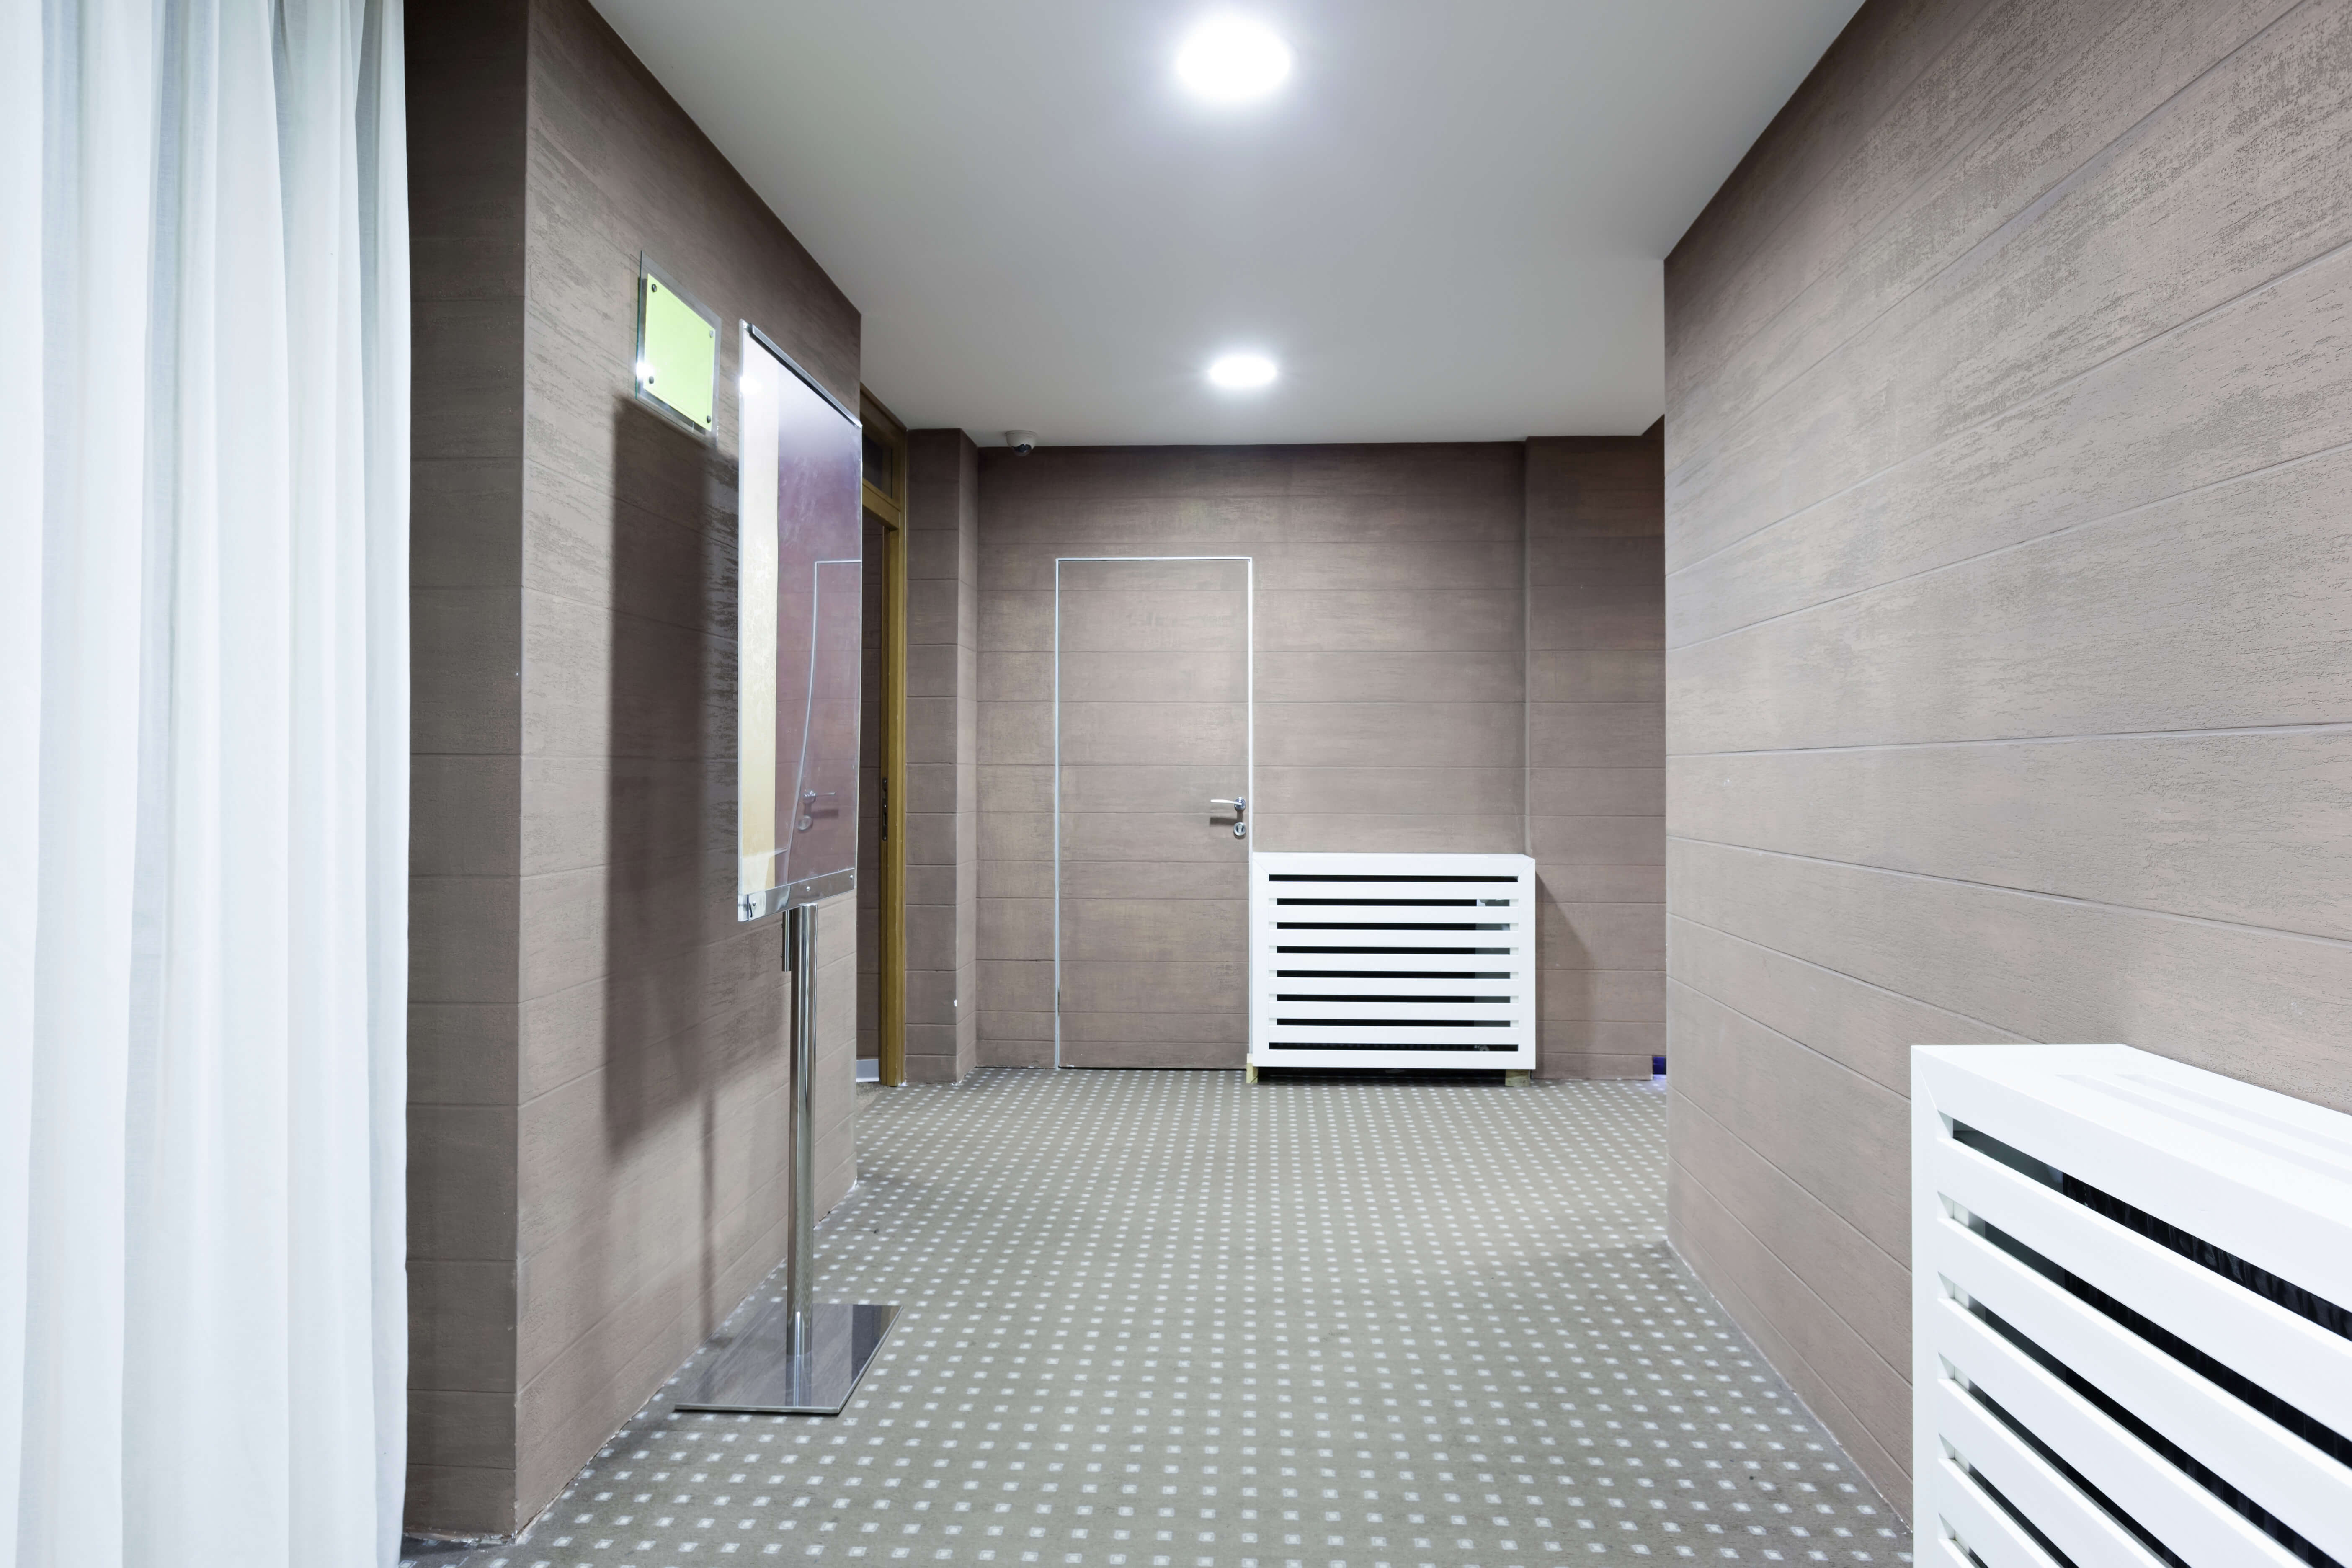 Image of office hallway that could use affordable commercial carpet cleaning Lindon services